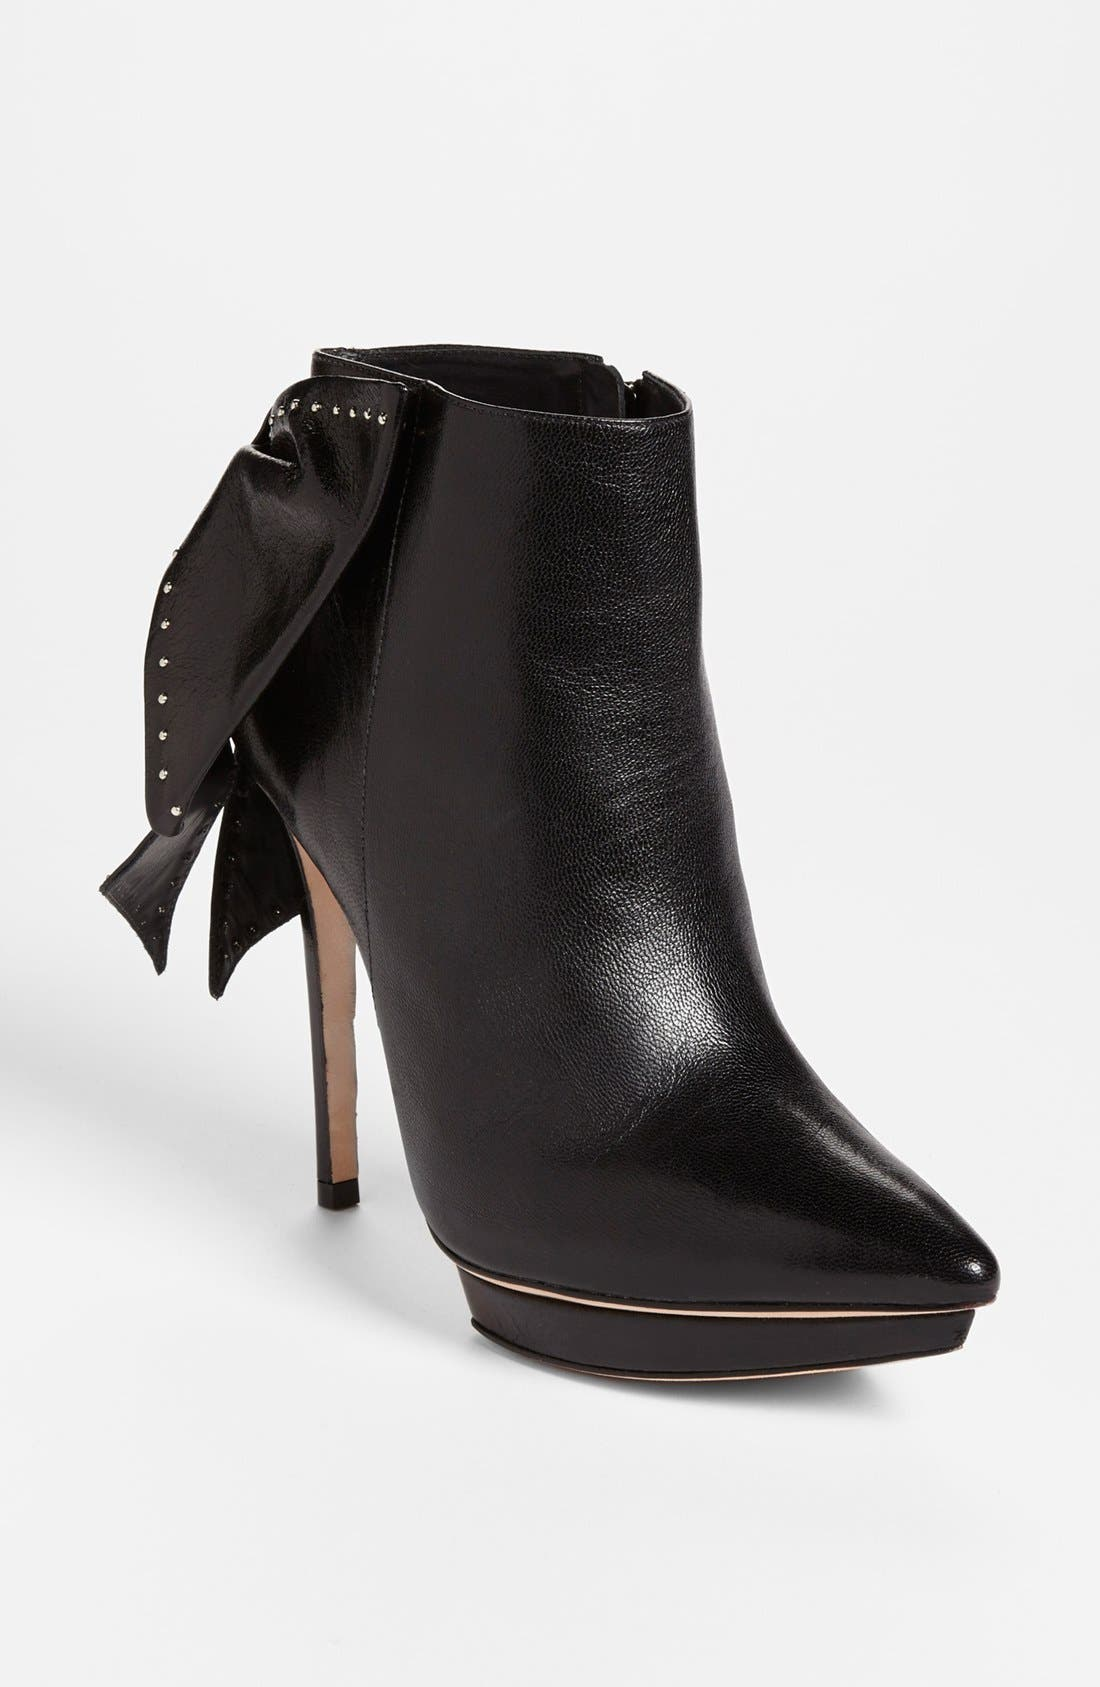 Main Image - Alice + Olivia 'Darleen' Leather Bootie